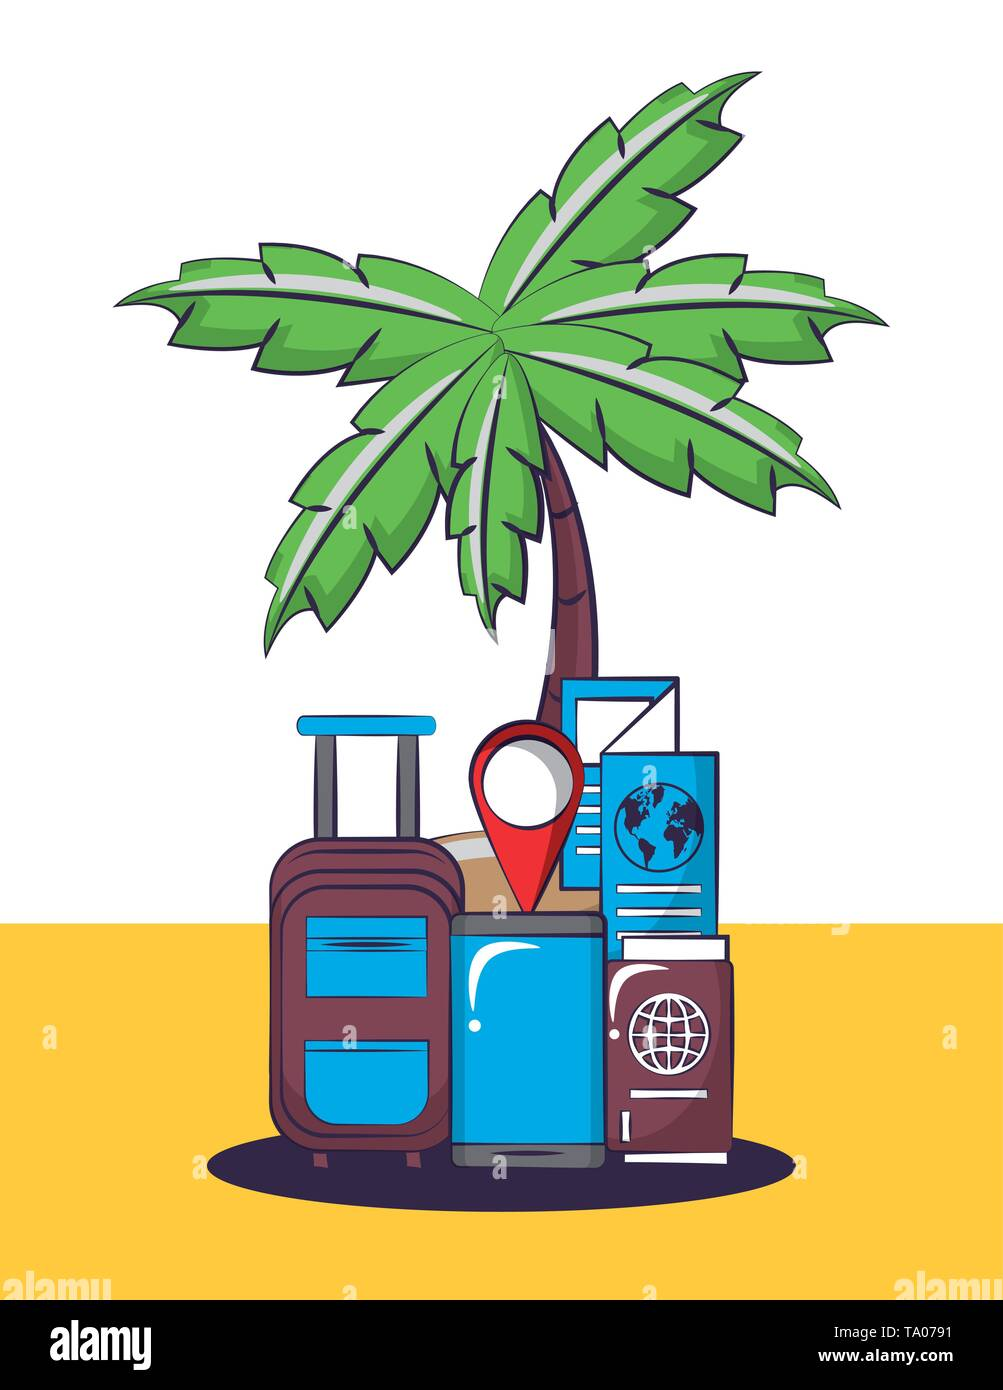 Travel and vacations cartoons - Stock Image